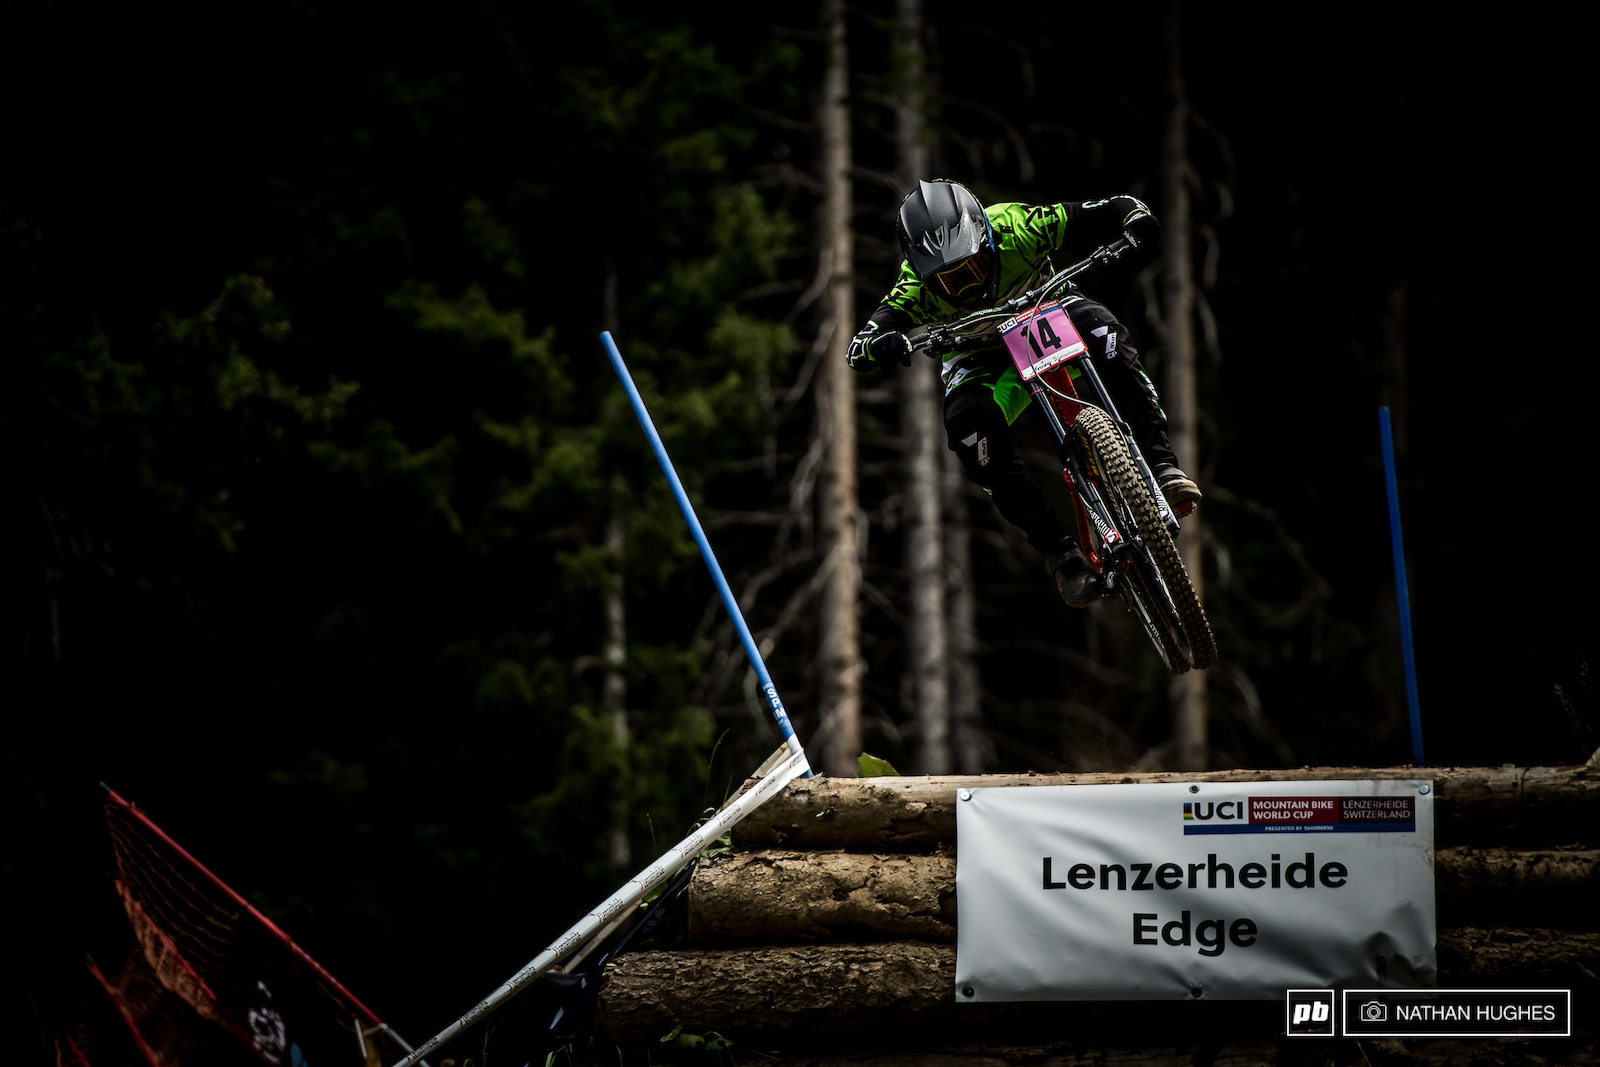 Vaea Verbeeck scroed her best ever WC result hucking into 7th.